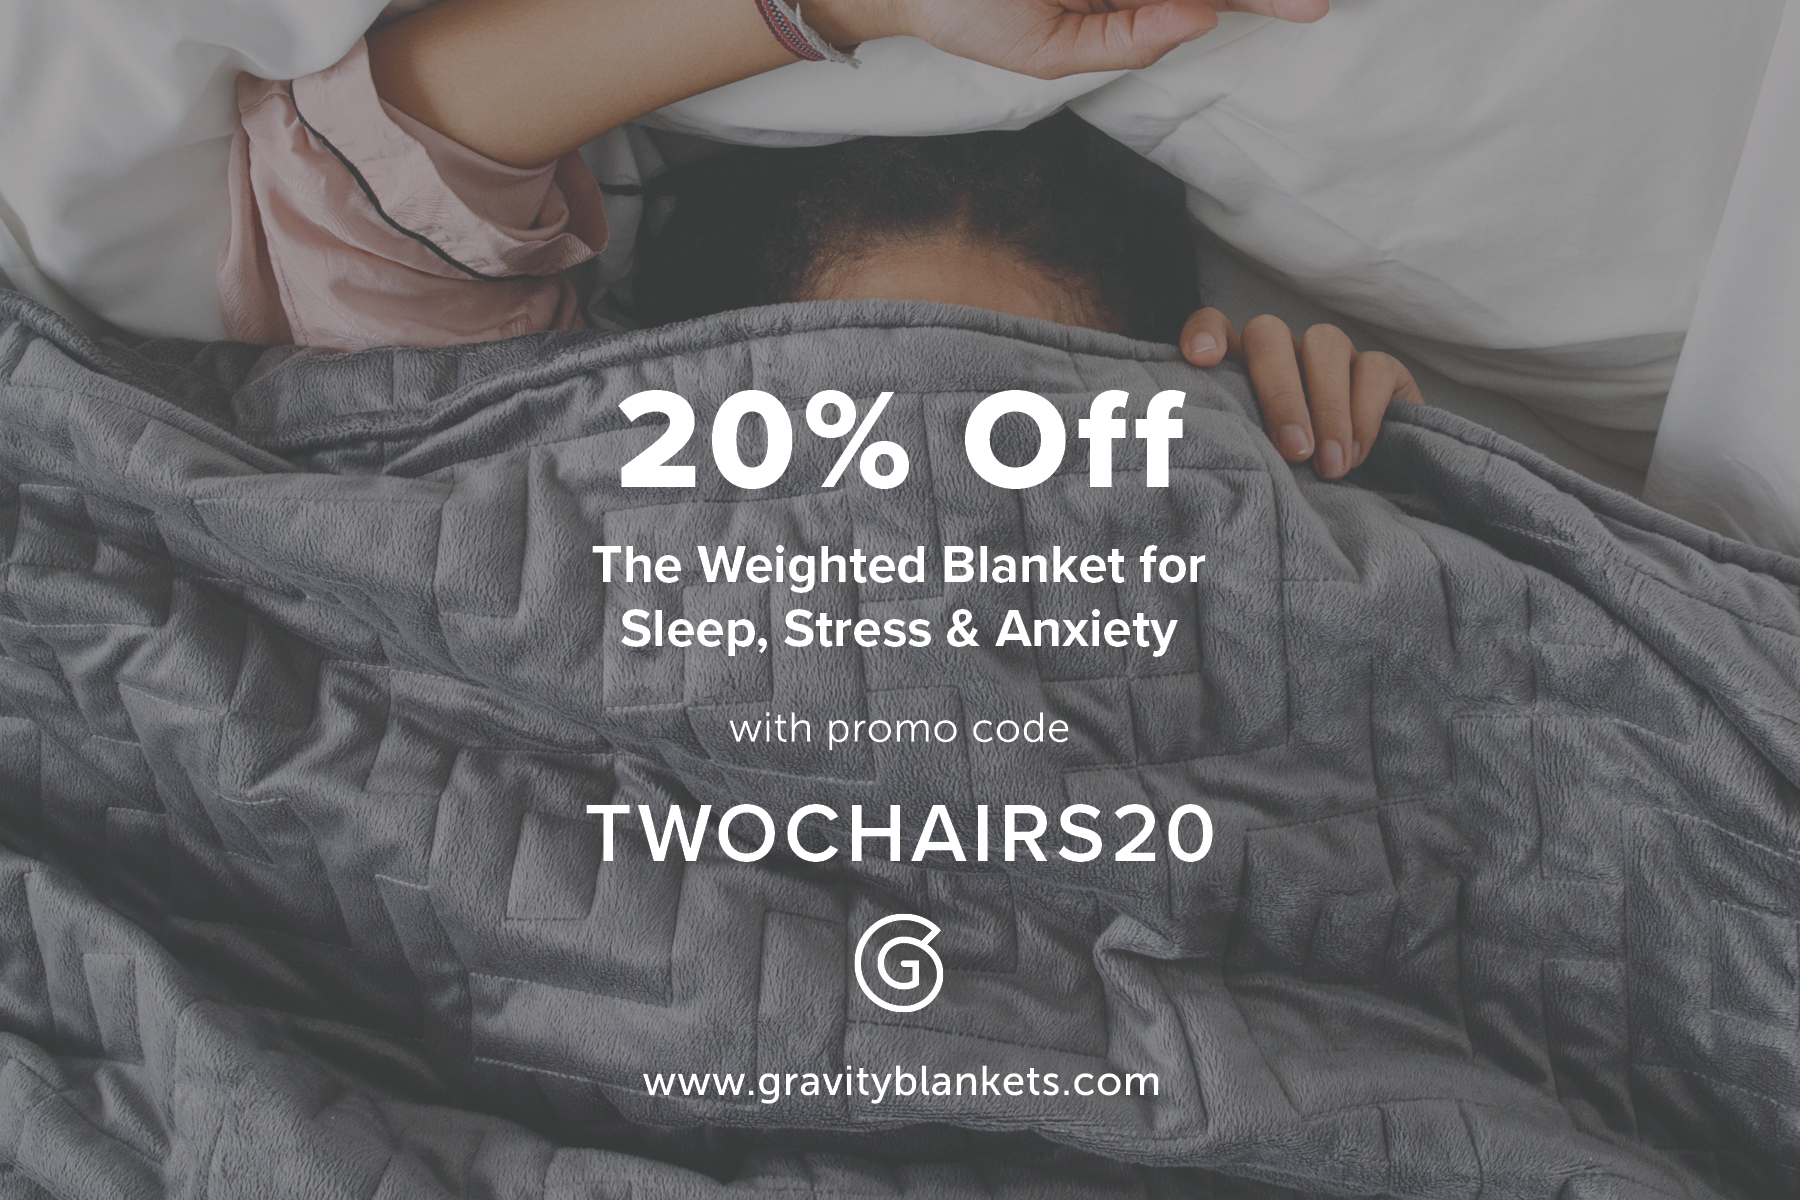 20% off promo code for Gravity Blankets: twochairs20